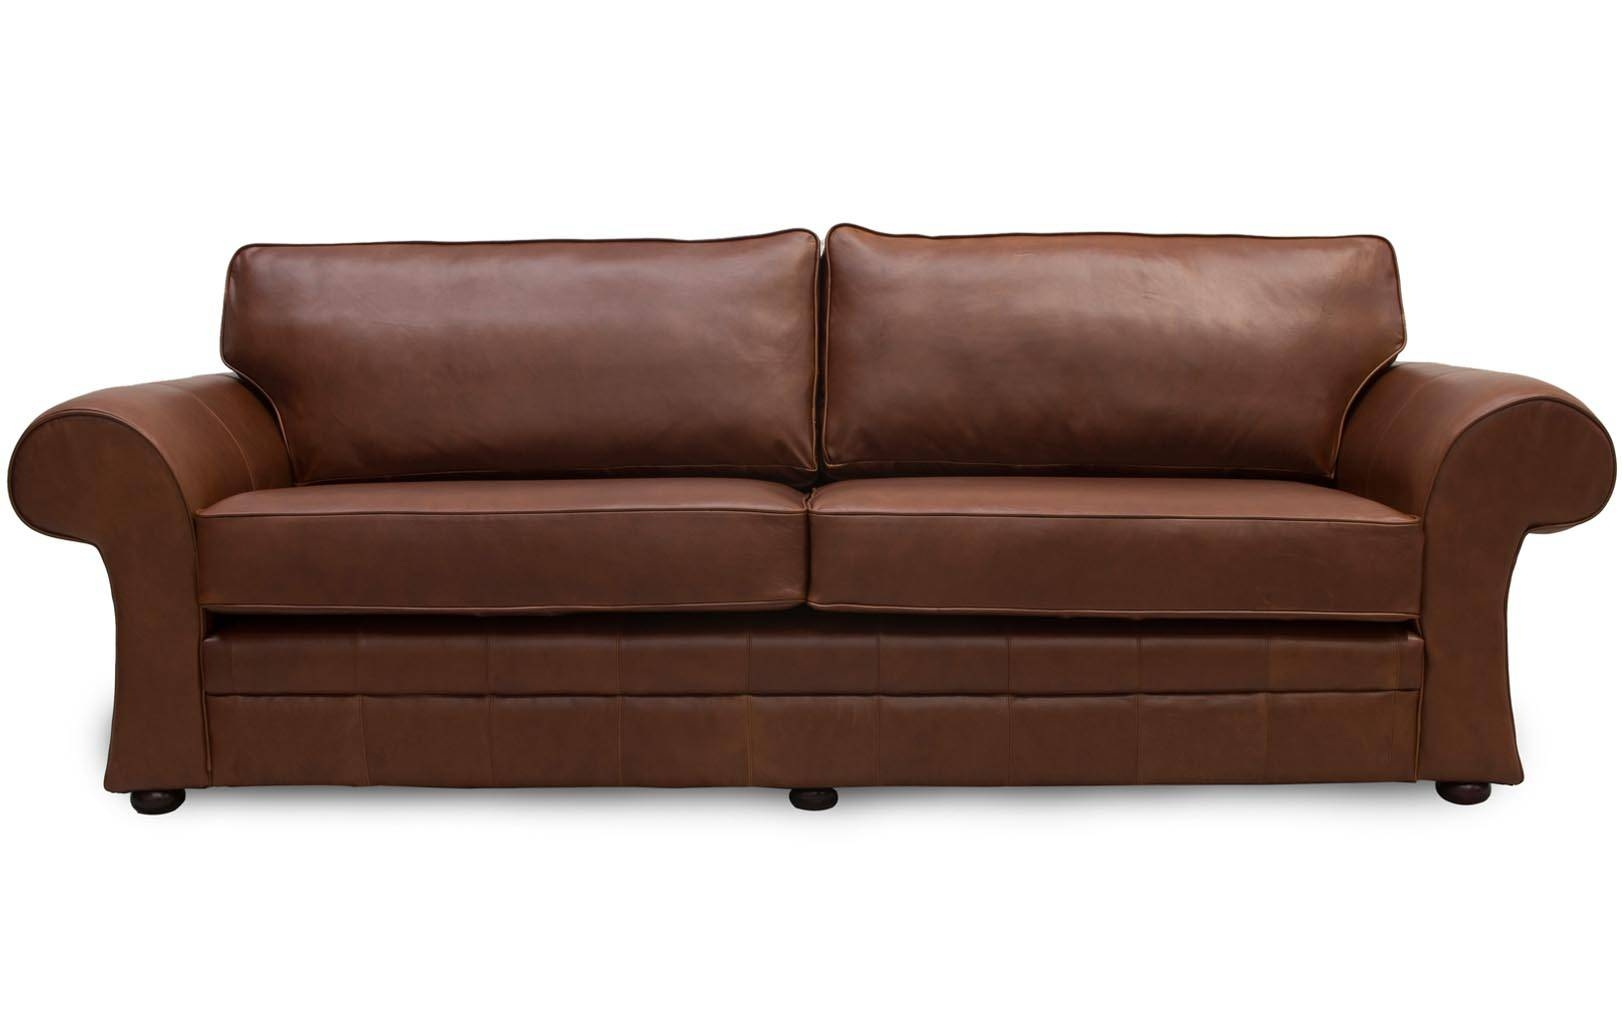 Cavan Scroll Arm Leather Sofa Made In Manchesterthe Leather inside Manchester Sofas (Image 5 of 30)